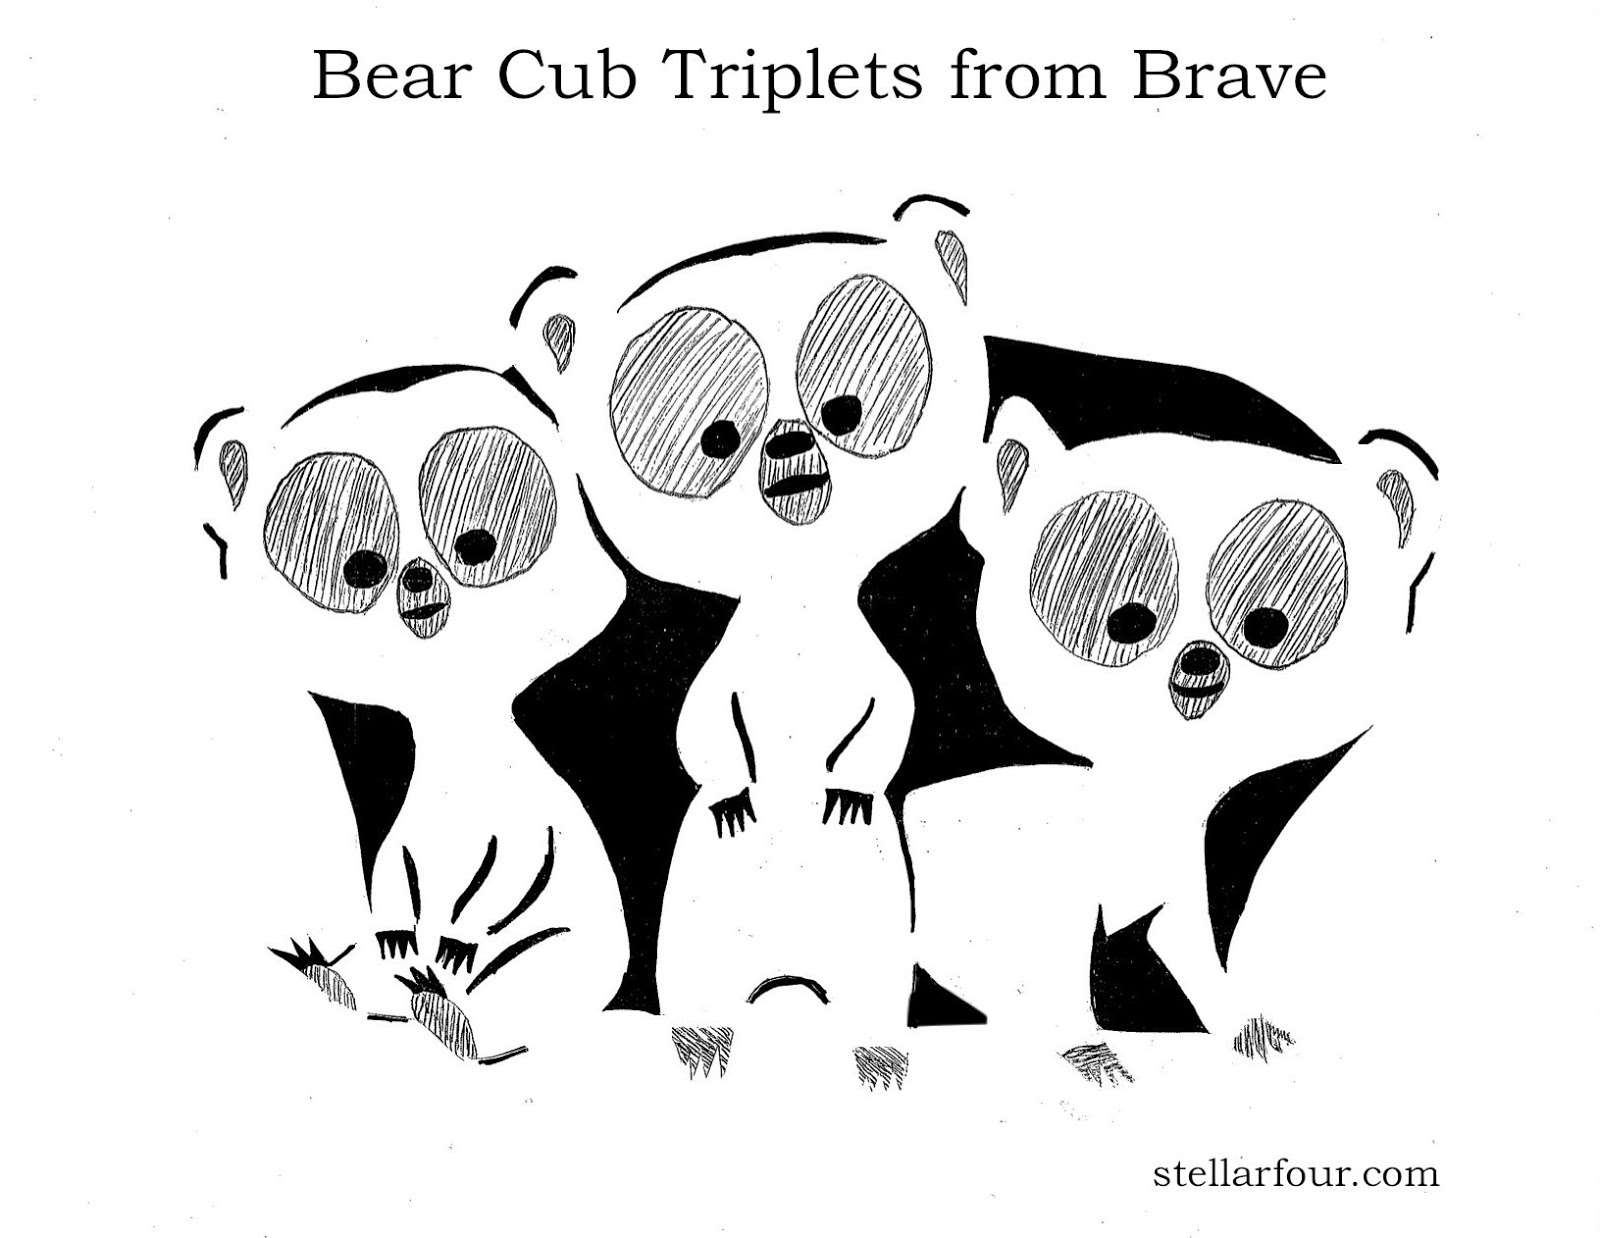 Stellar Four: Pumpkin Carving Pattern: The Bear Cub Triplets from Brave